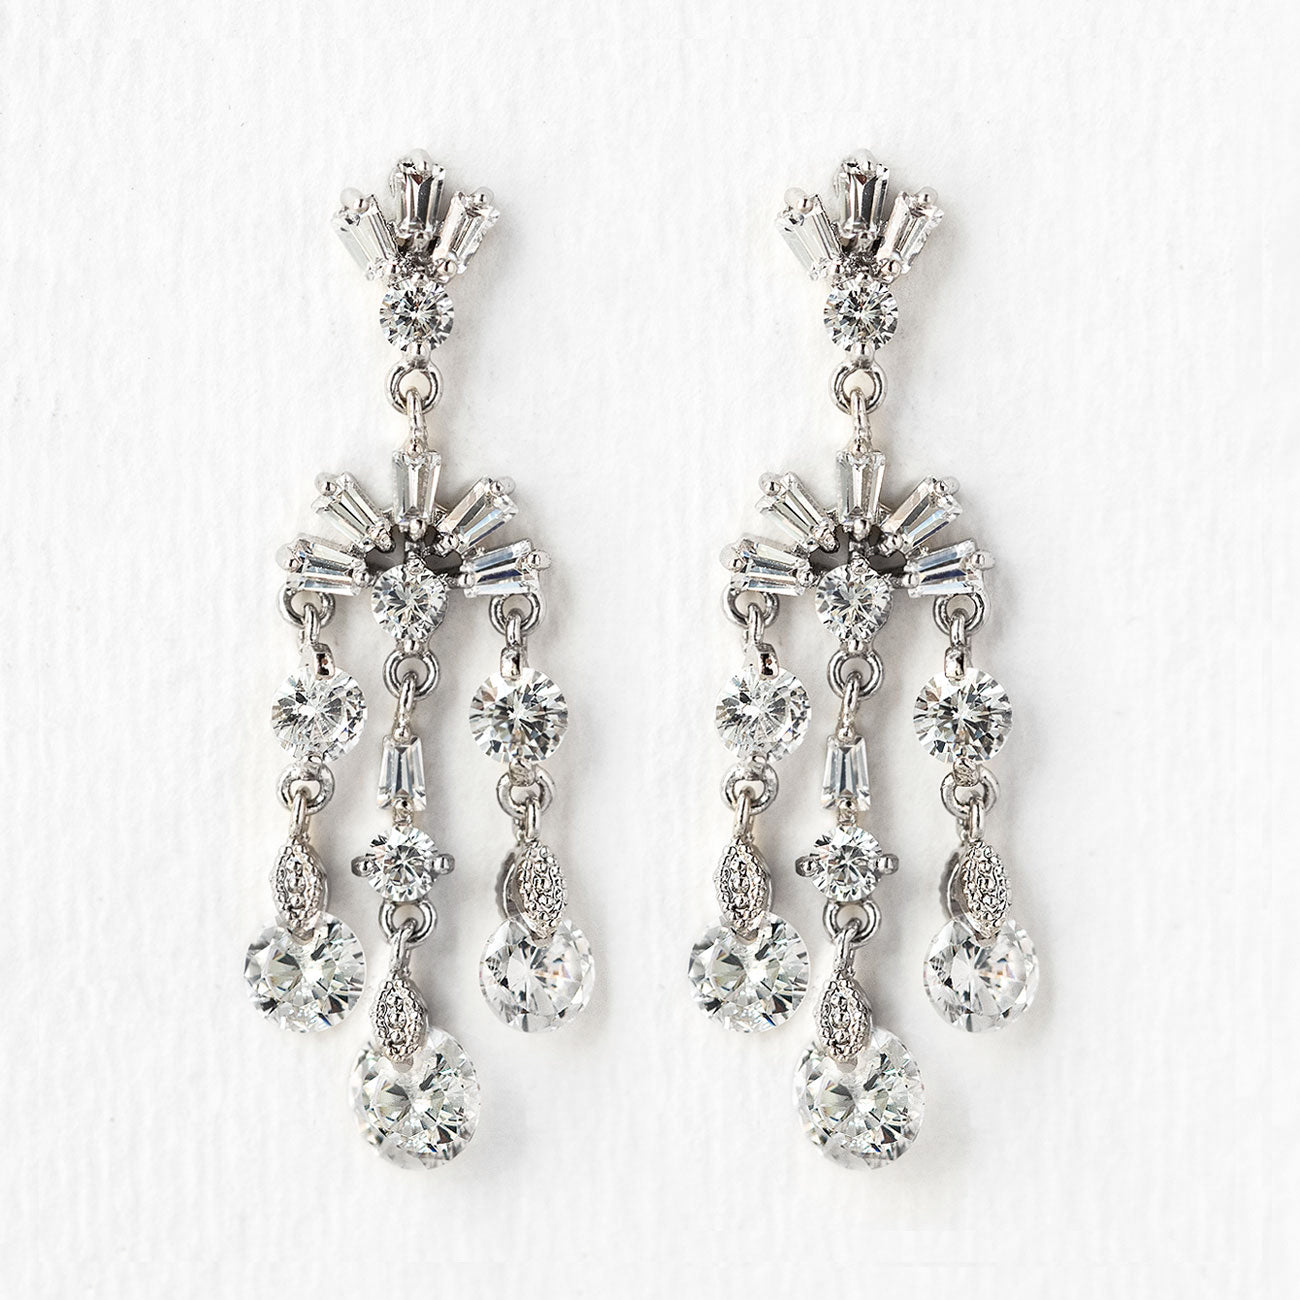 Deco Dainty Drop Earrings